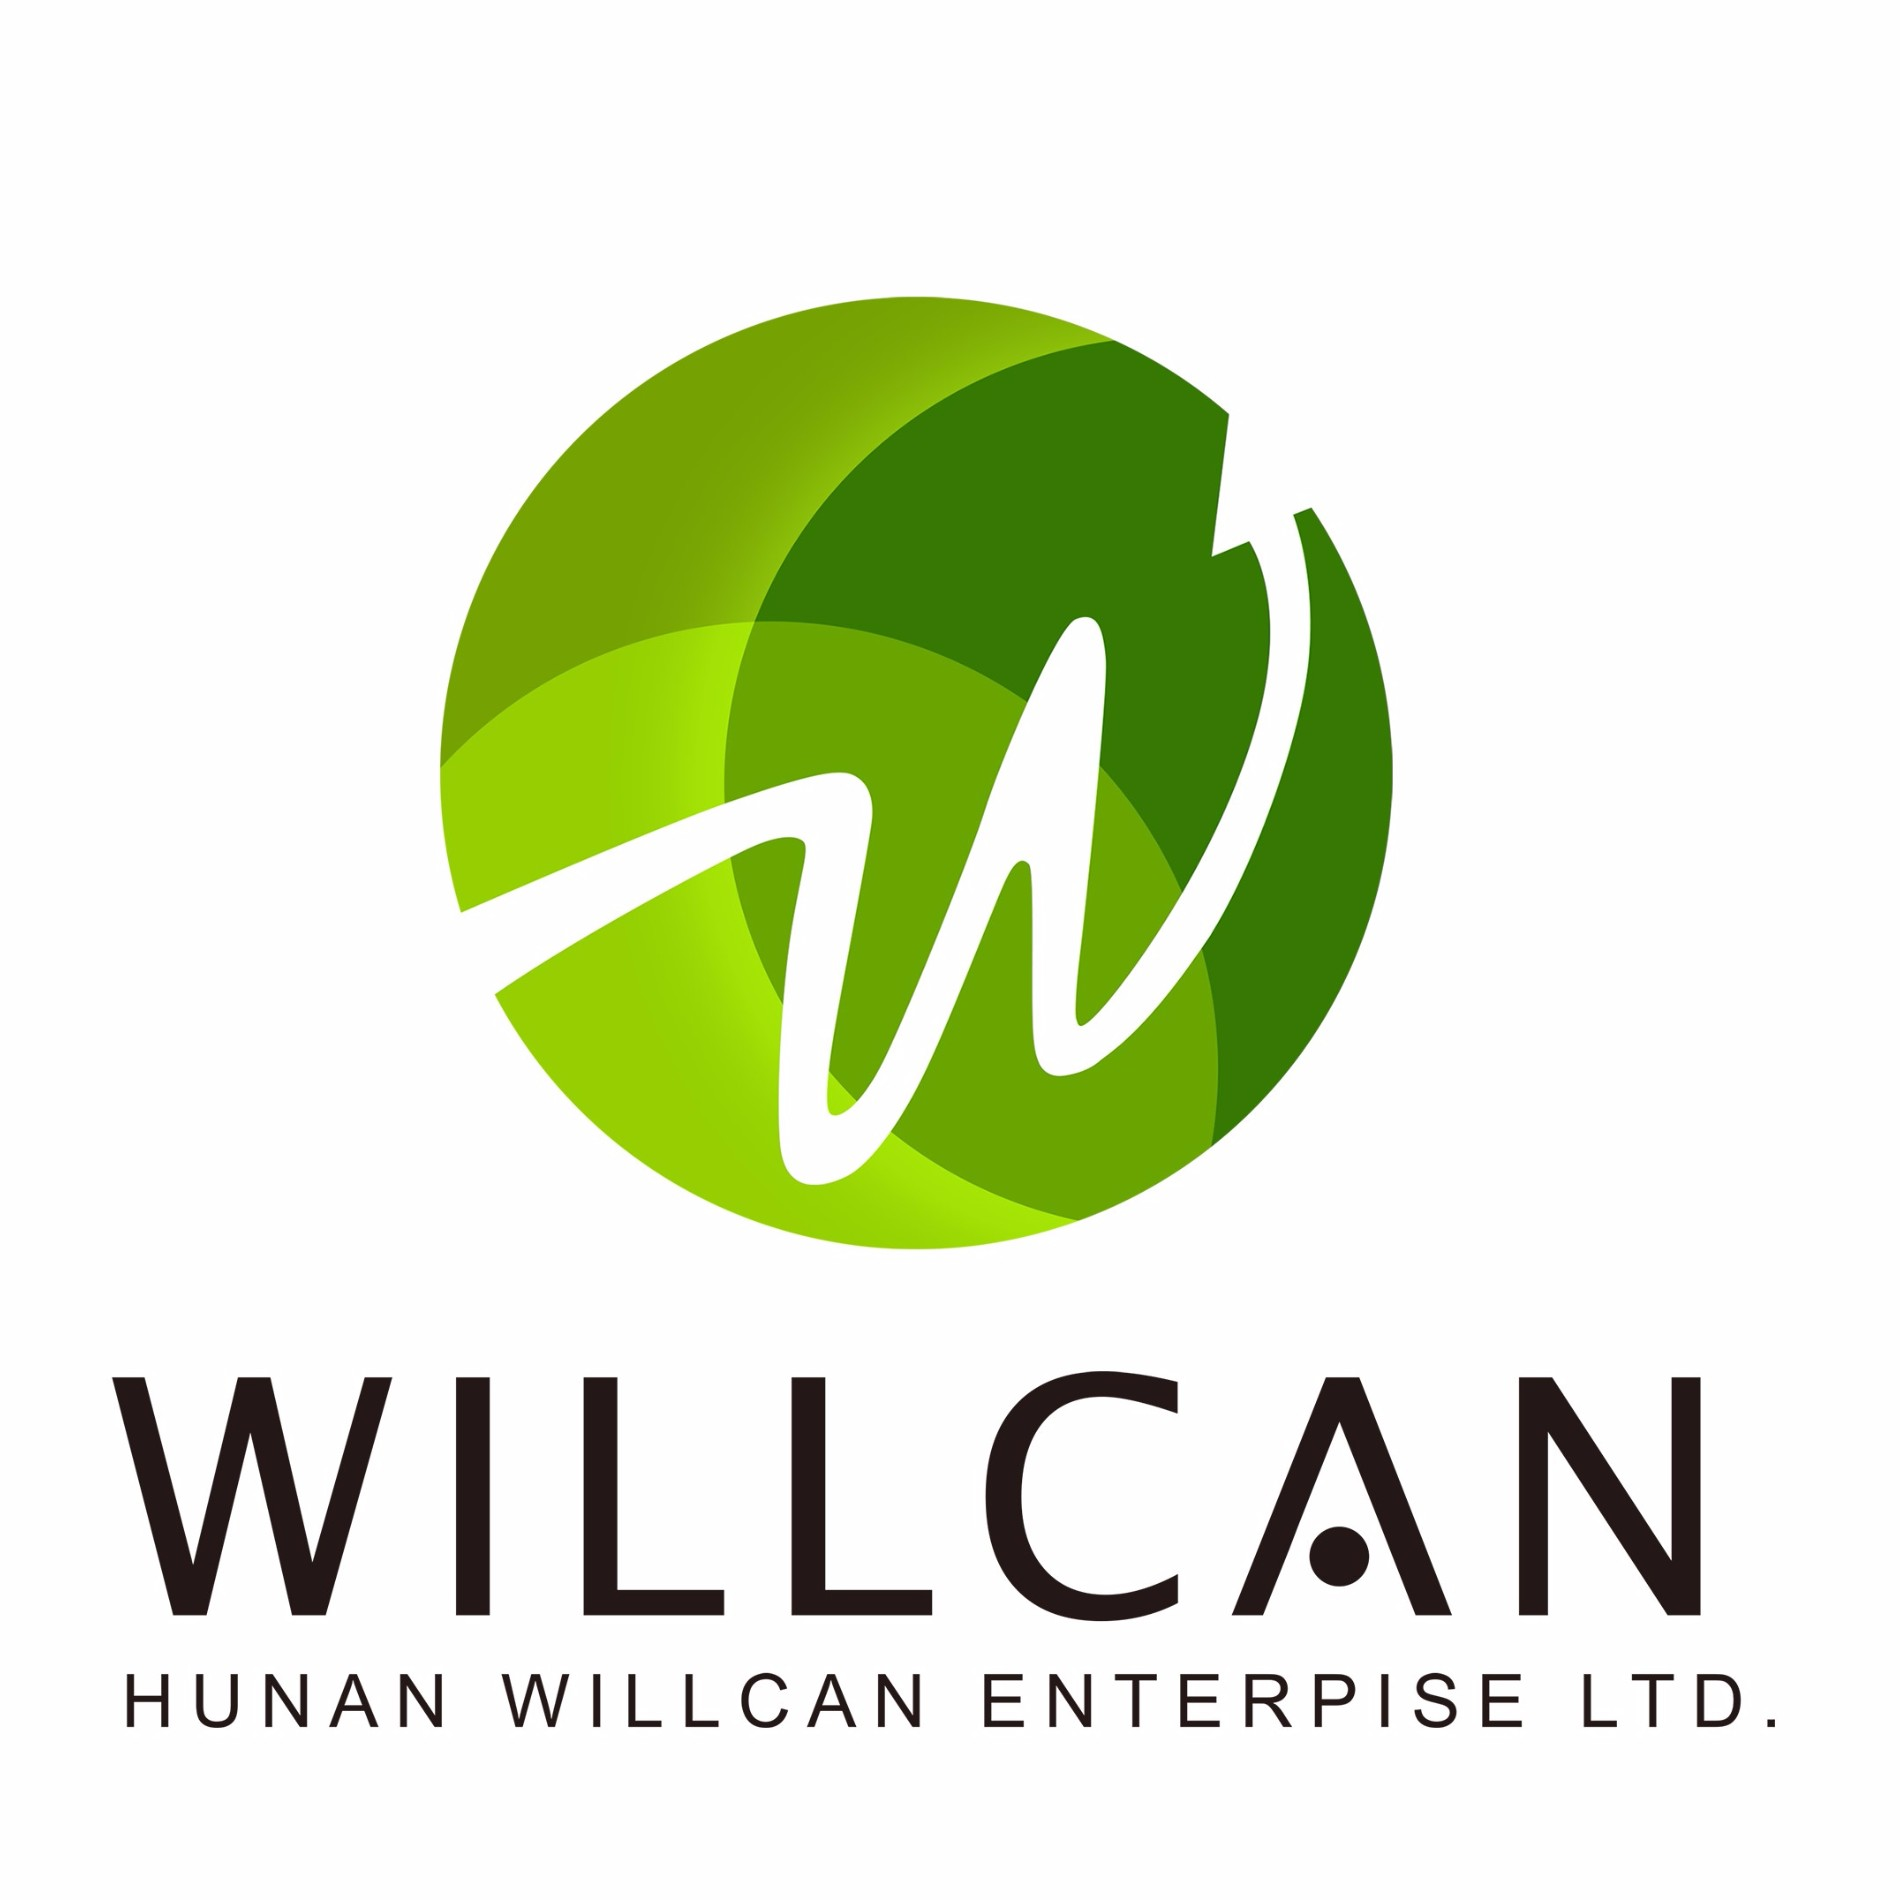 HUNAN WILLCAN ENTERPRISE LTD.